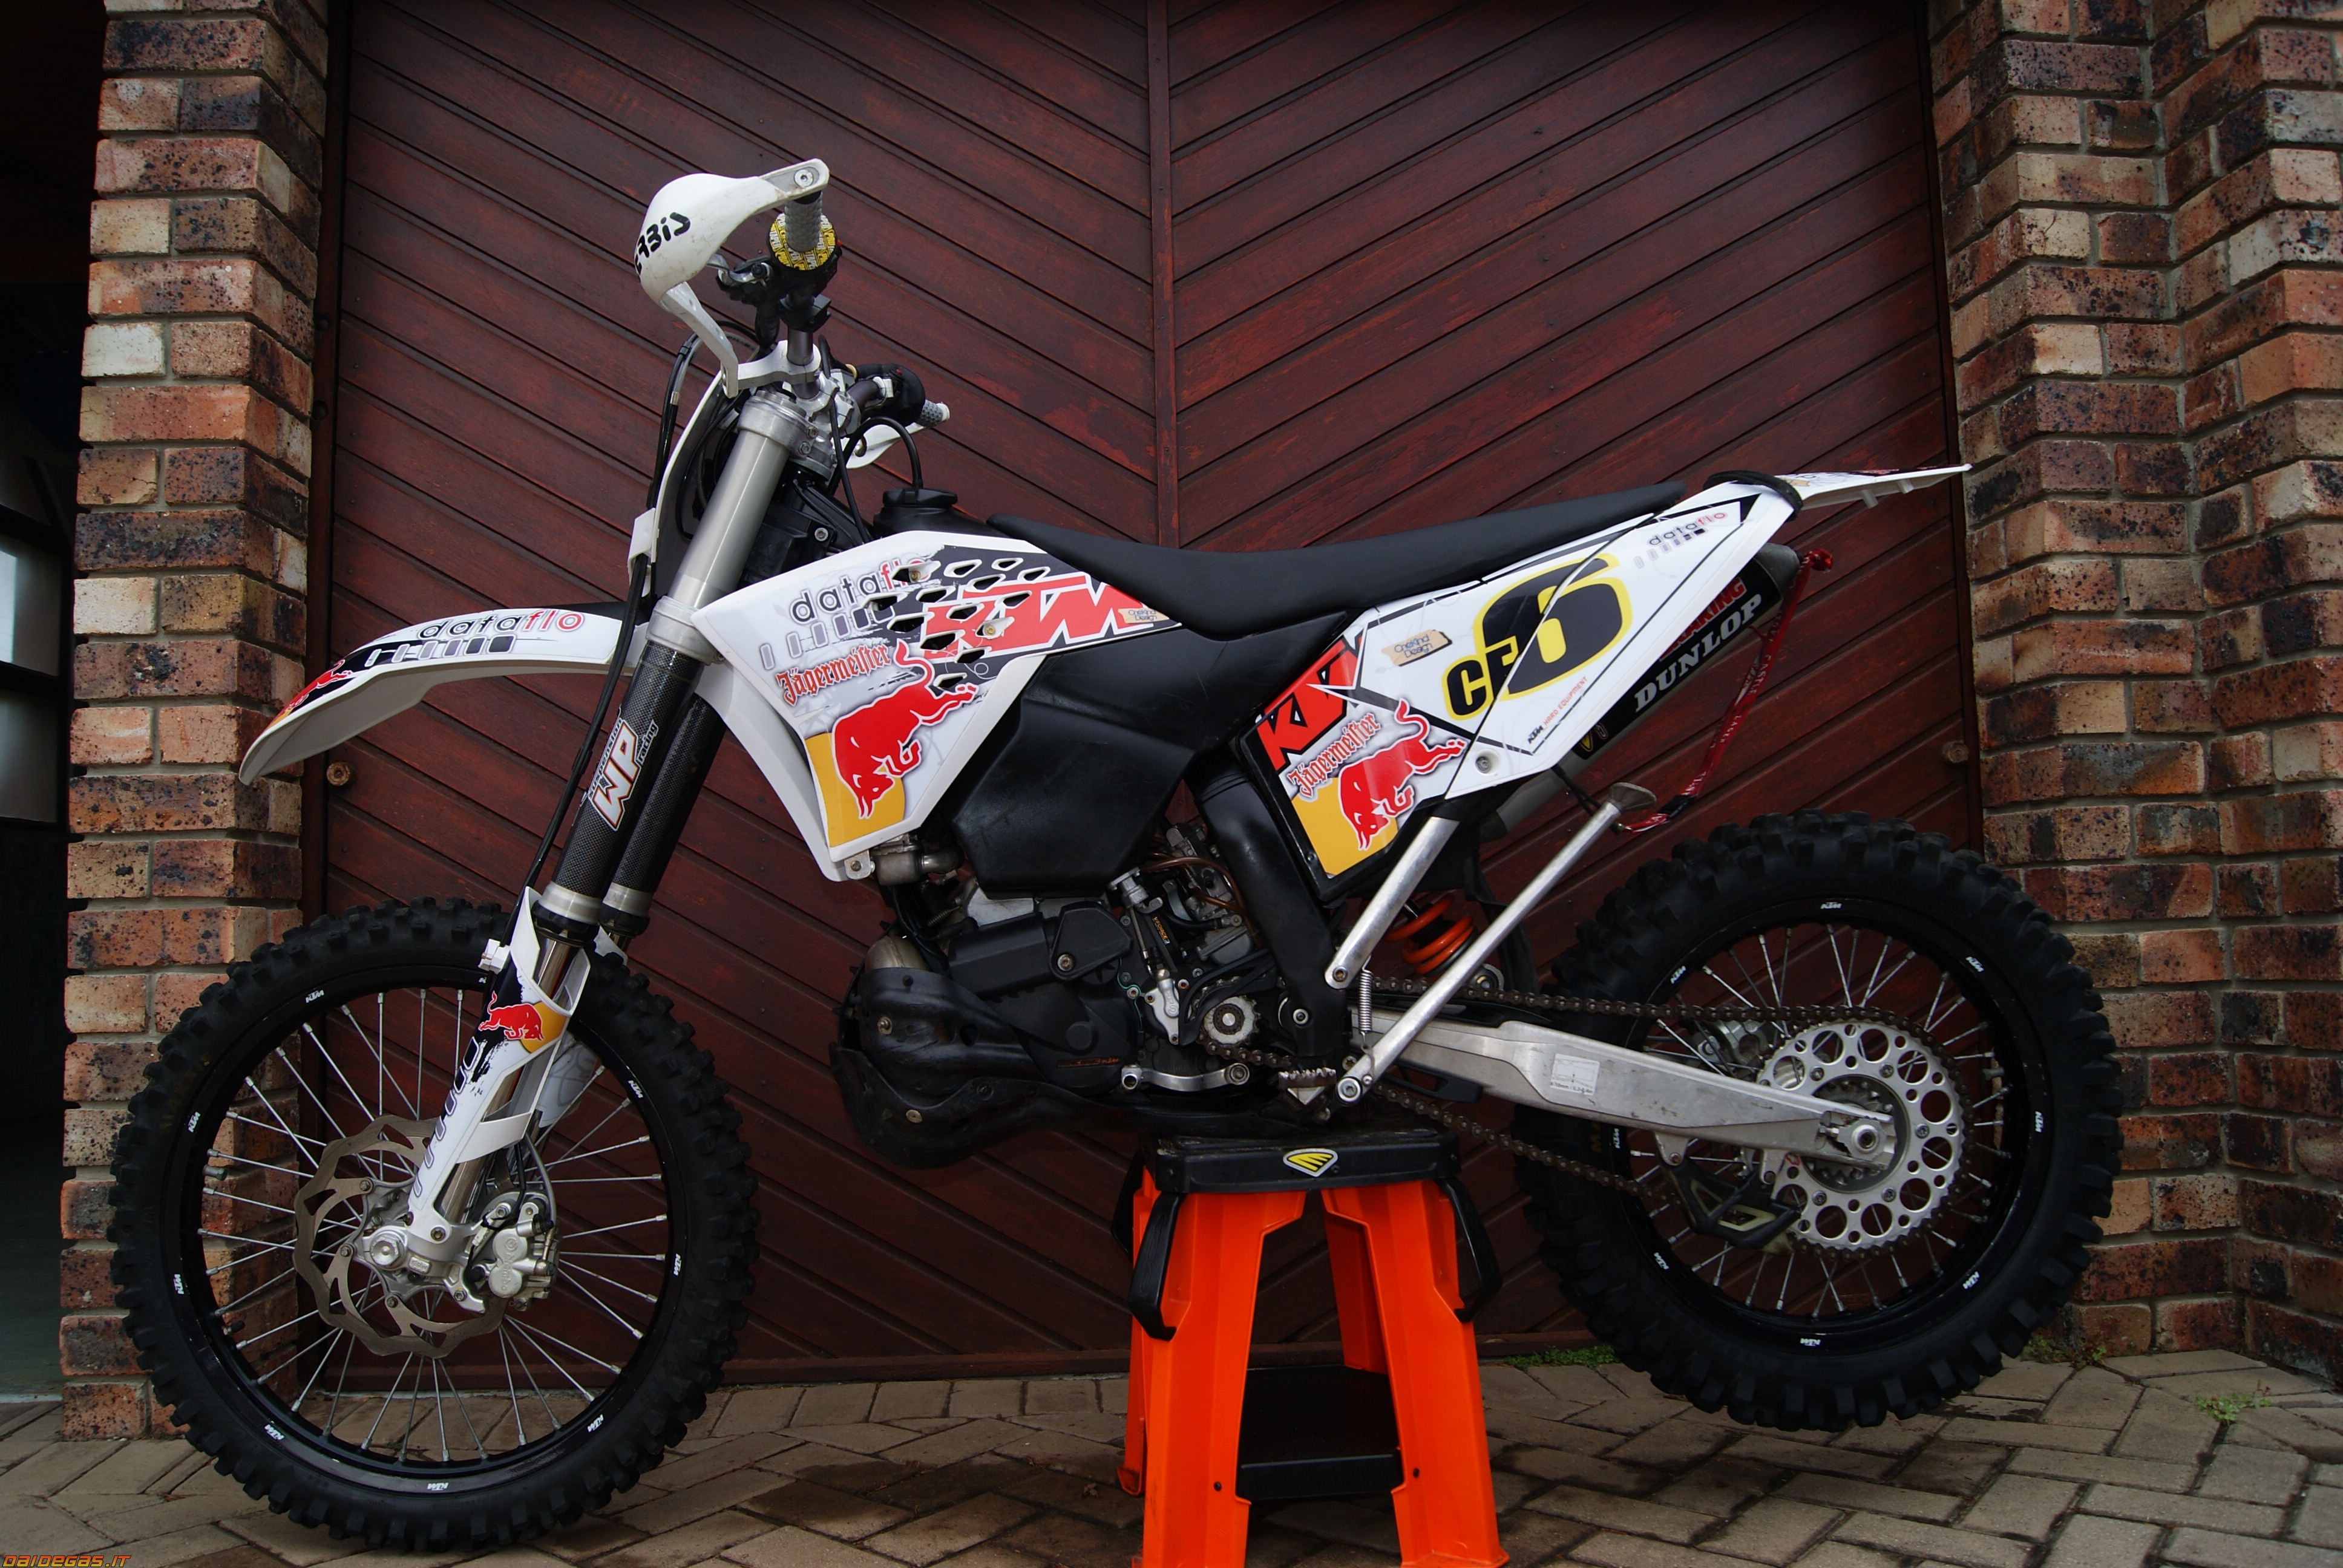 Image search 2013 Red Bull KTM graphics Moto Related Motocross Forums 3872x2592